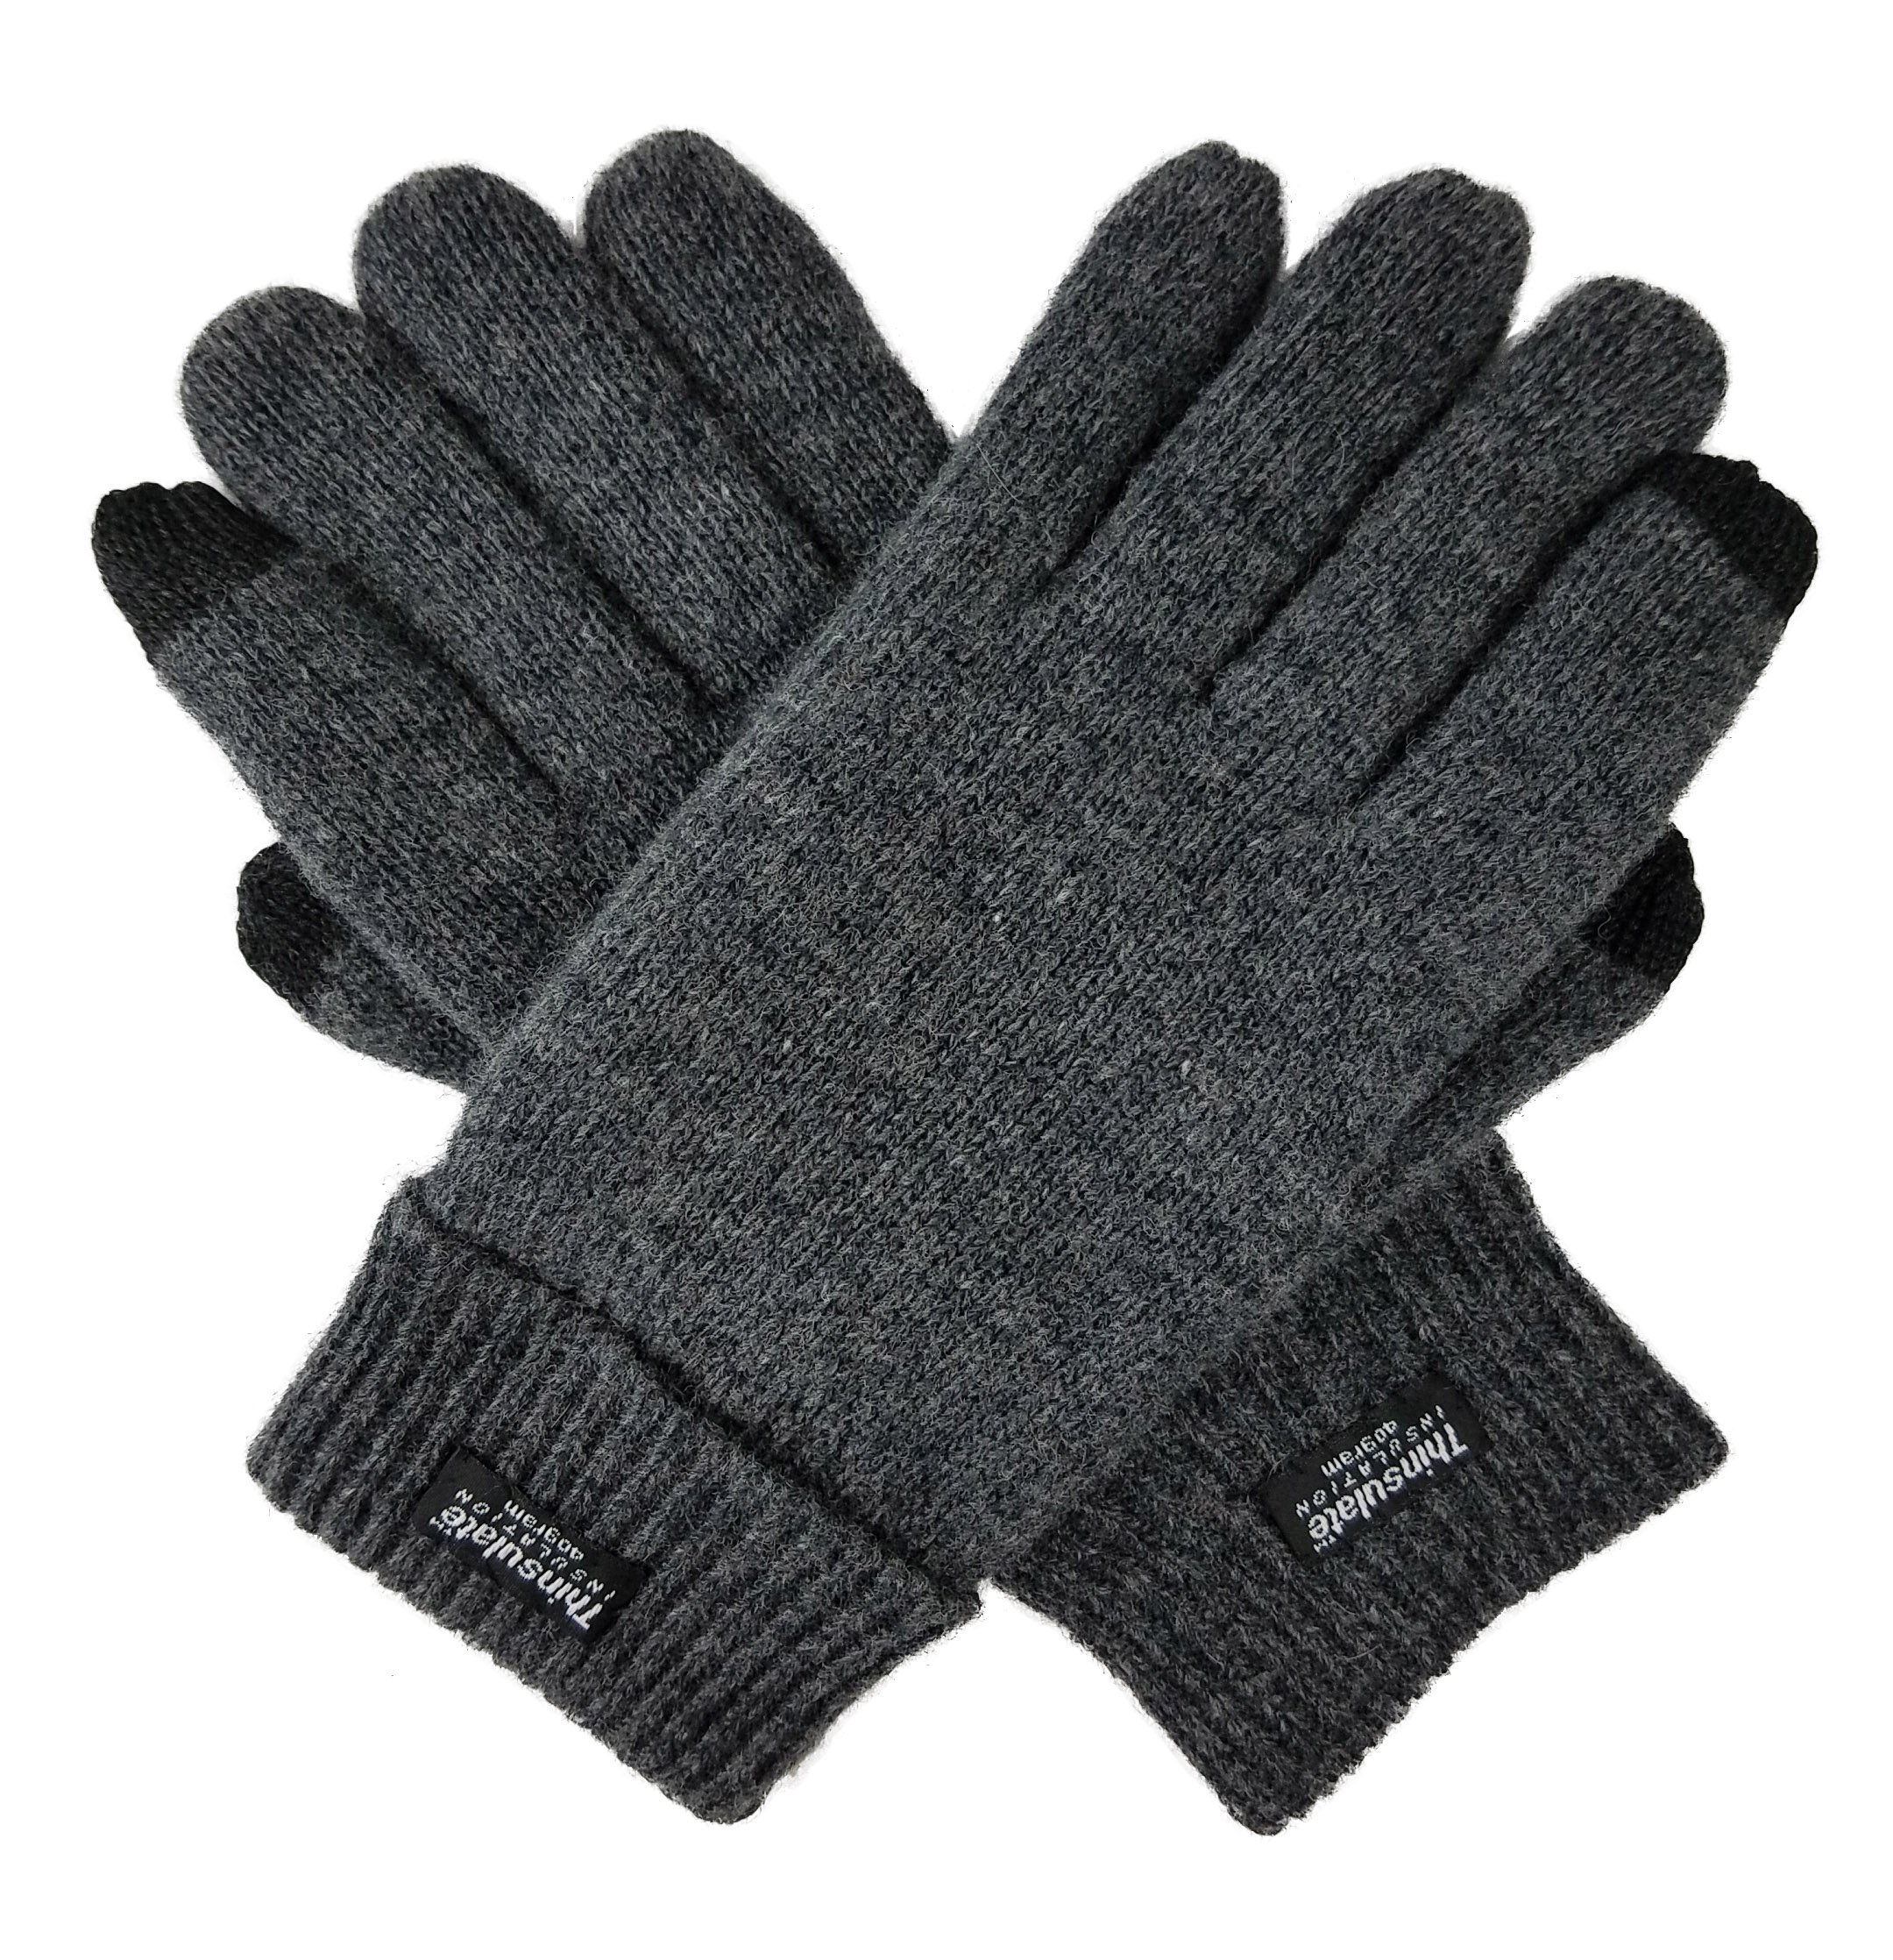 Bruceriver Men's Pure Wool Knitted Touchscreen Gloves with Thinsulate Lining Size L/XL (Anthra Touchsreen)